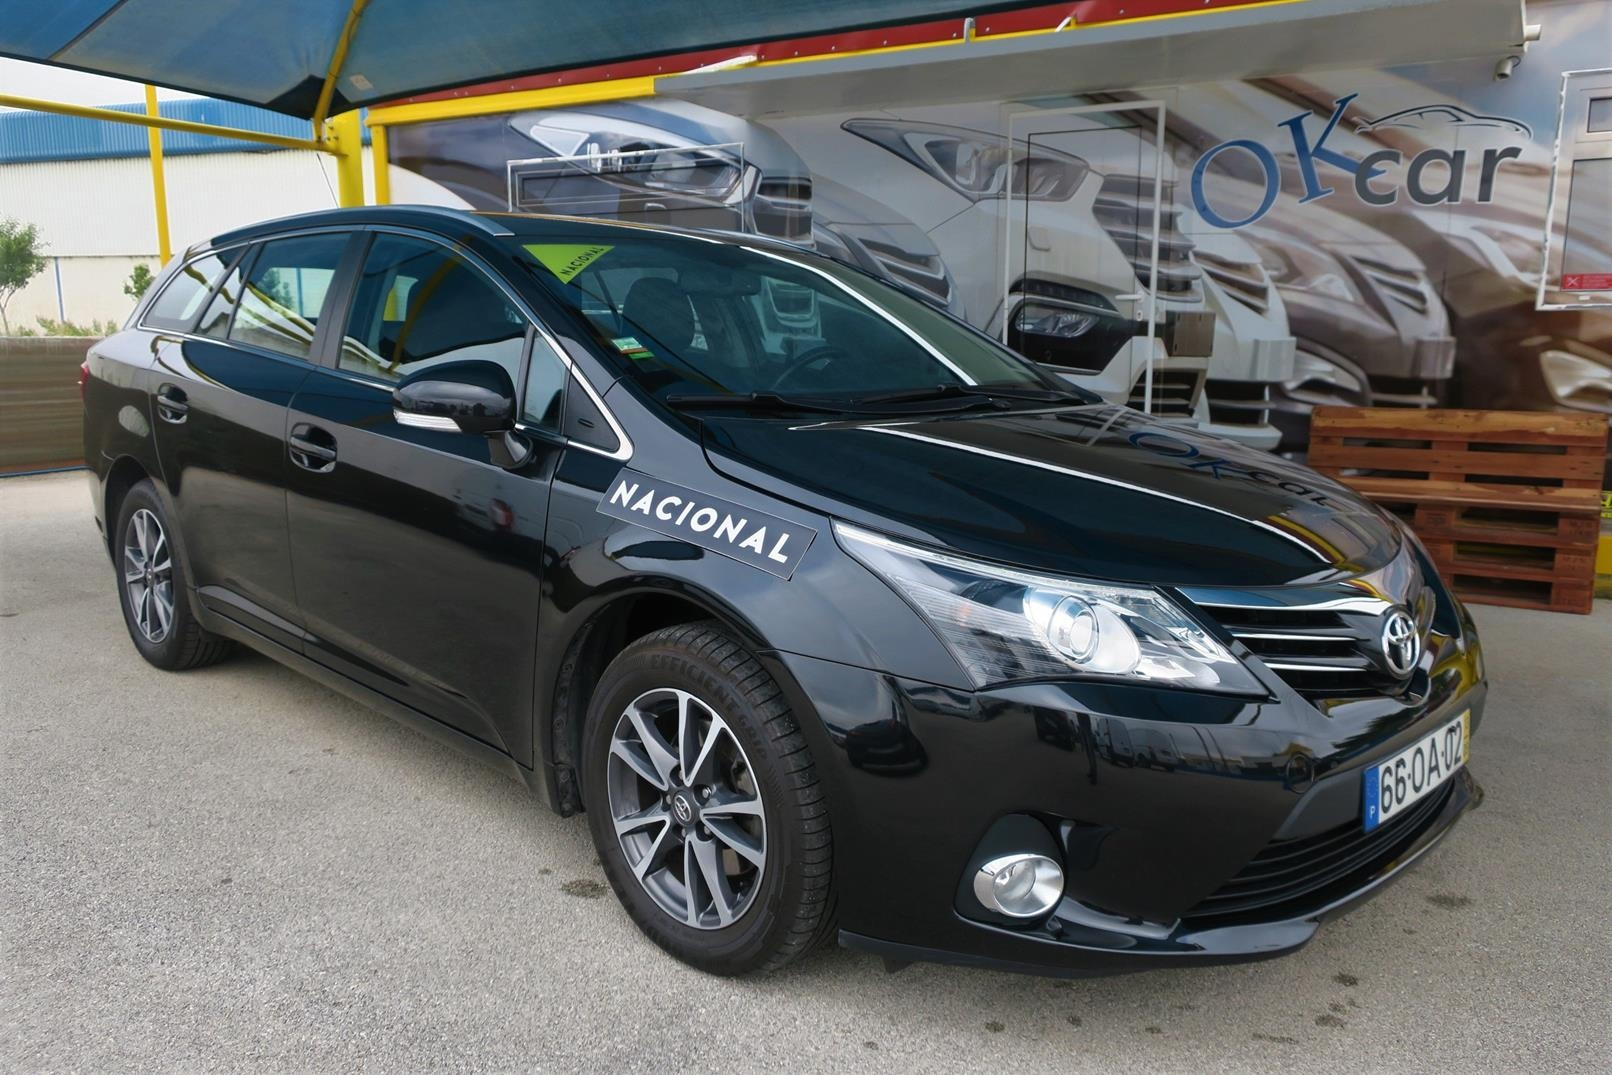 Toyota Avensis SW 2.0 D-4D Exclusive